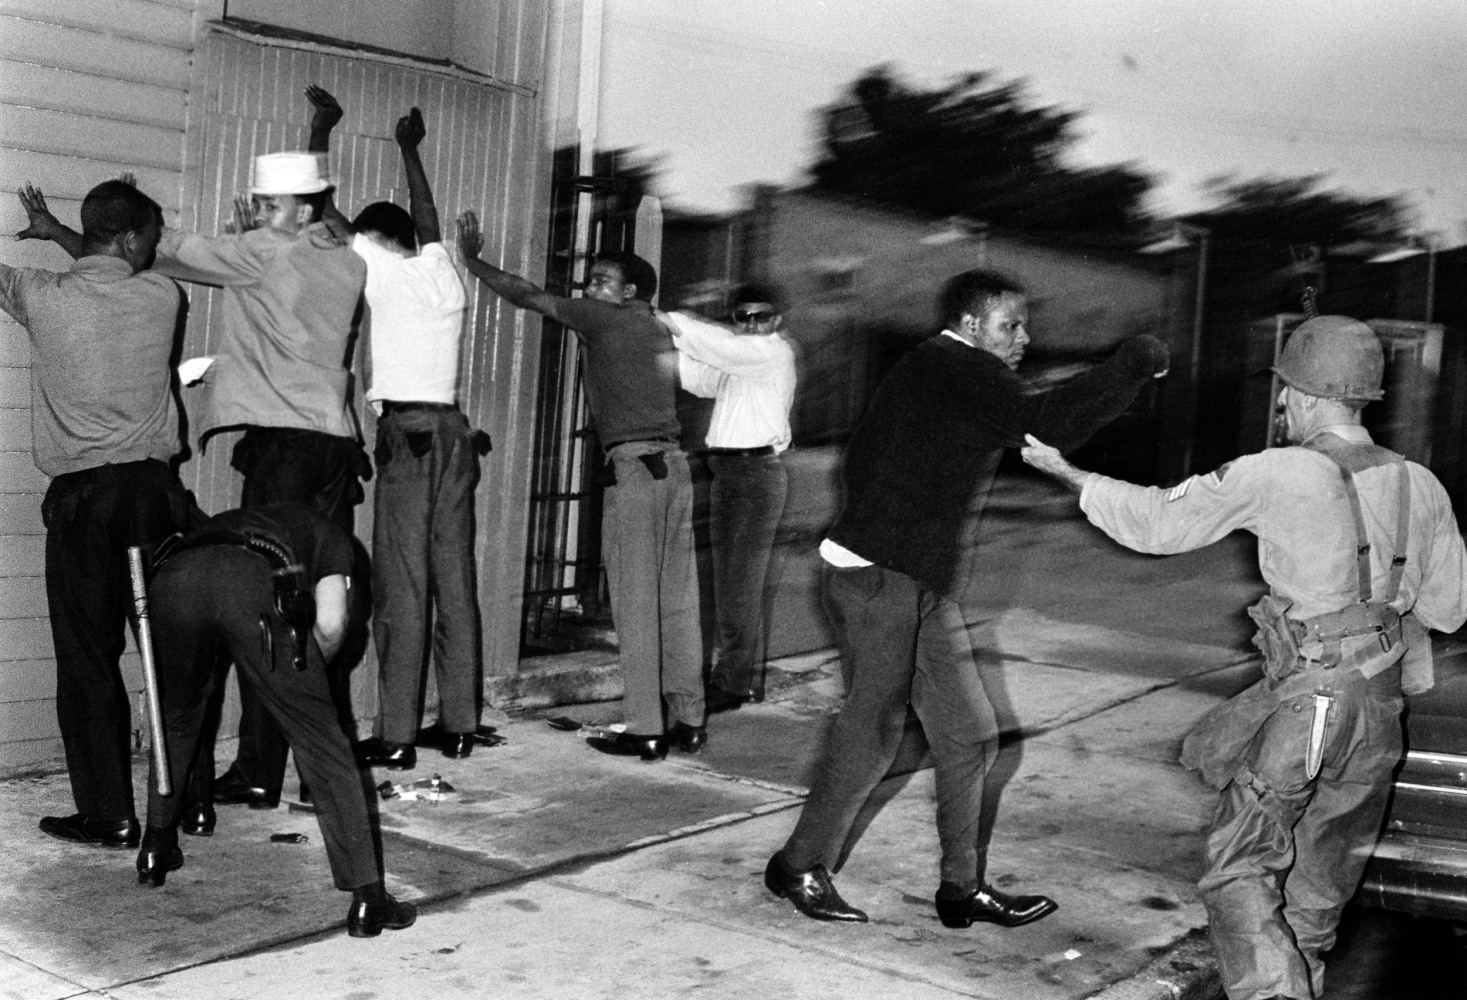 the newark riots of 1967 essay Next, they investigate the ways in which citizens respond to government (in)action and social conditions by analyzing a government report to understand the causes of the newark riots of 1967 and the community and government responses to those events.